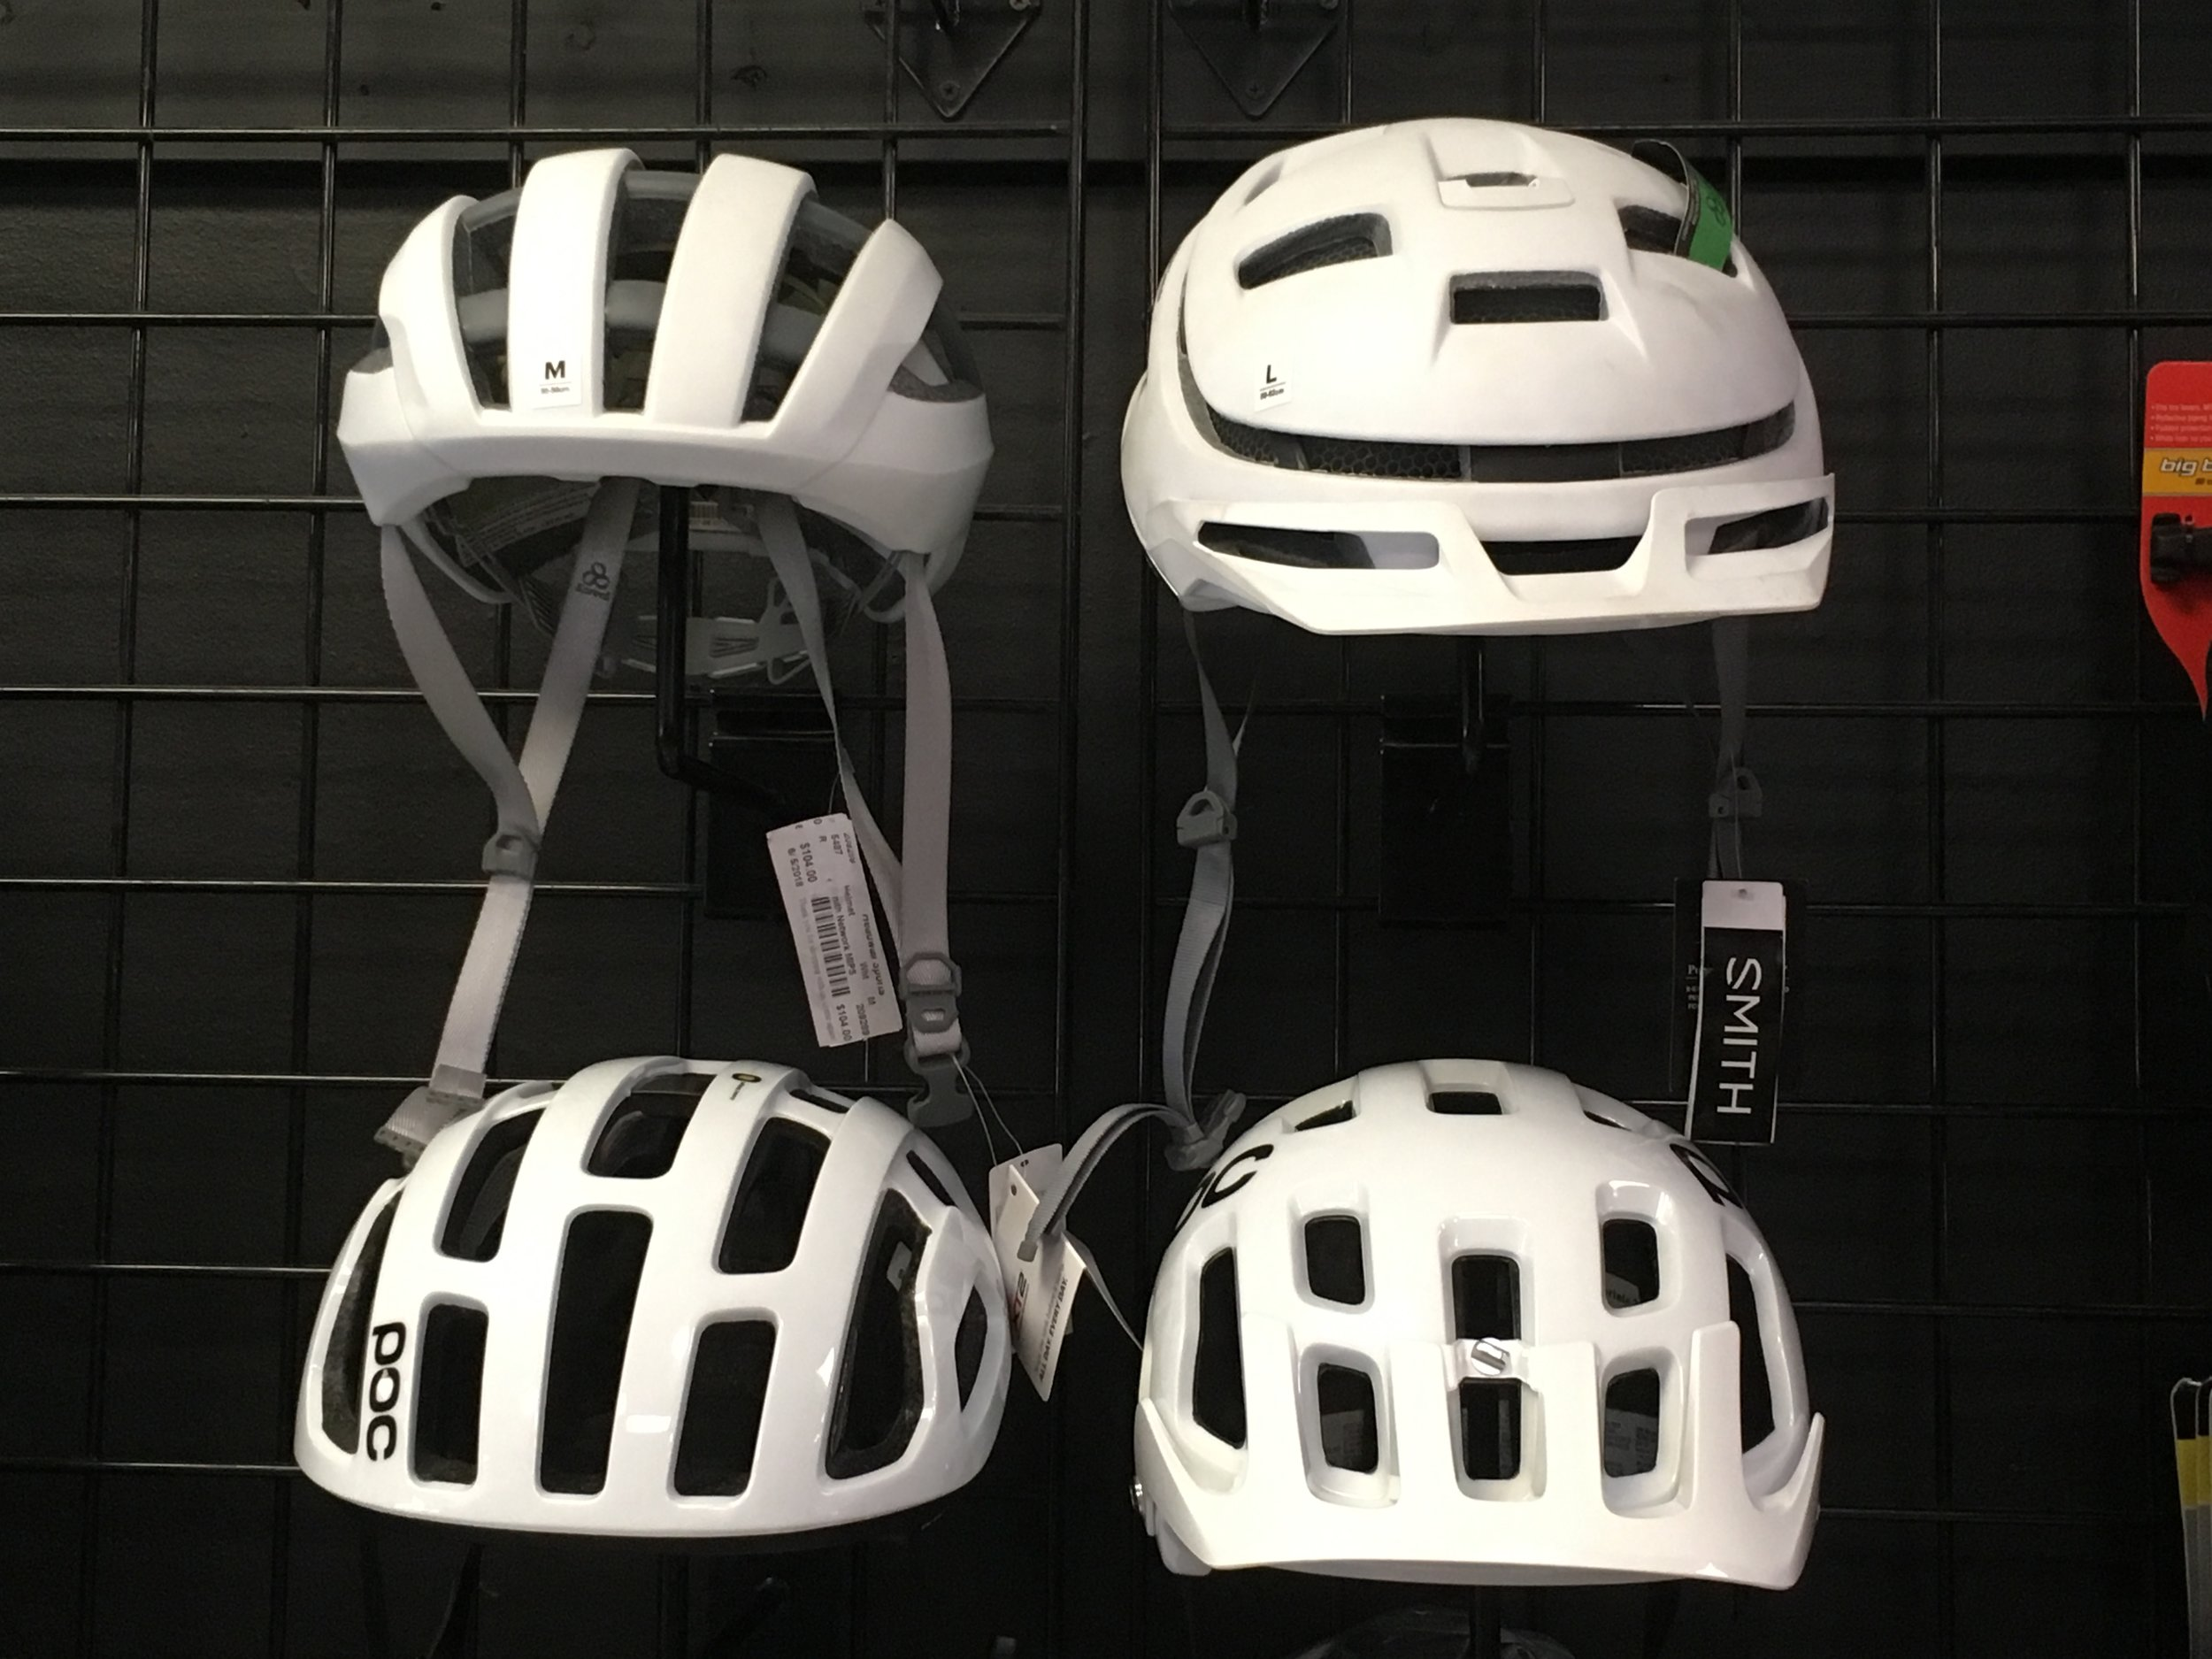 40%-50% off on brand new POC and Smith bike helmets!